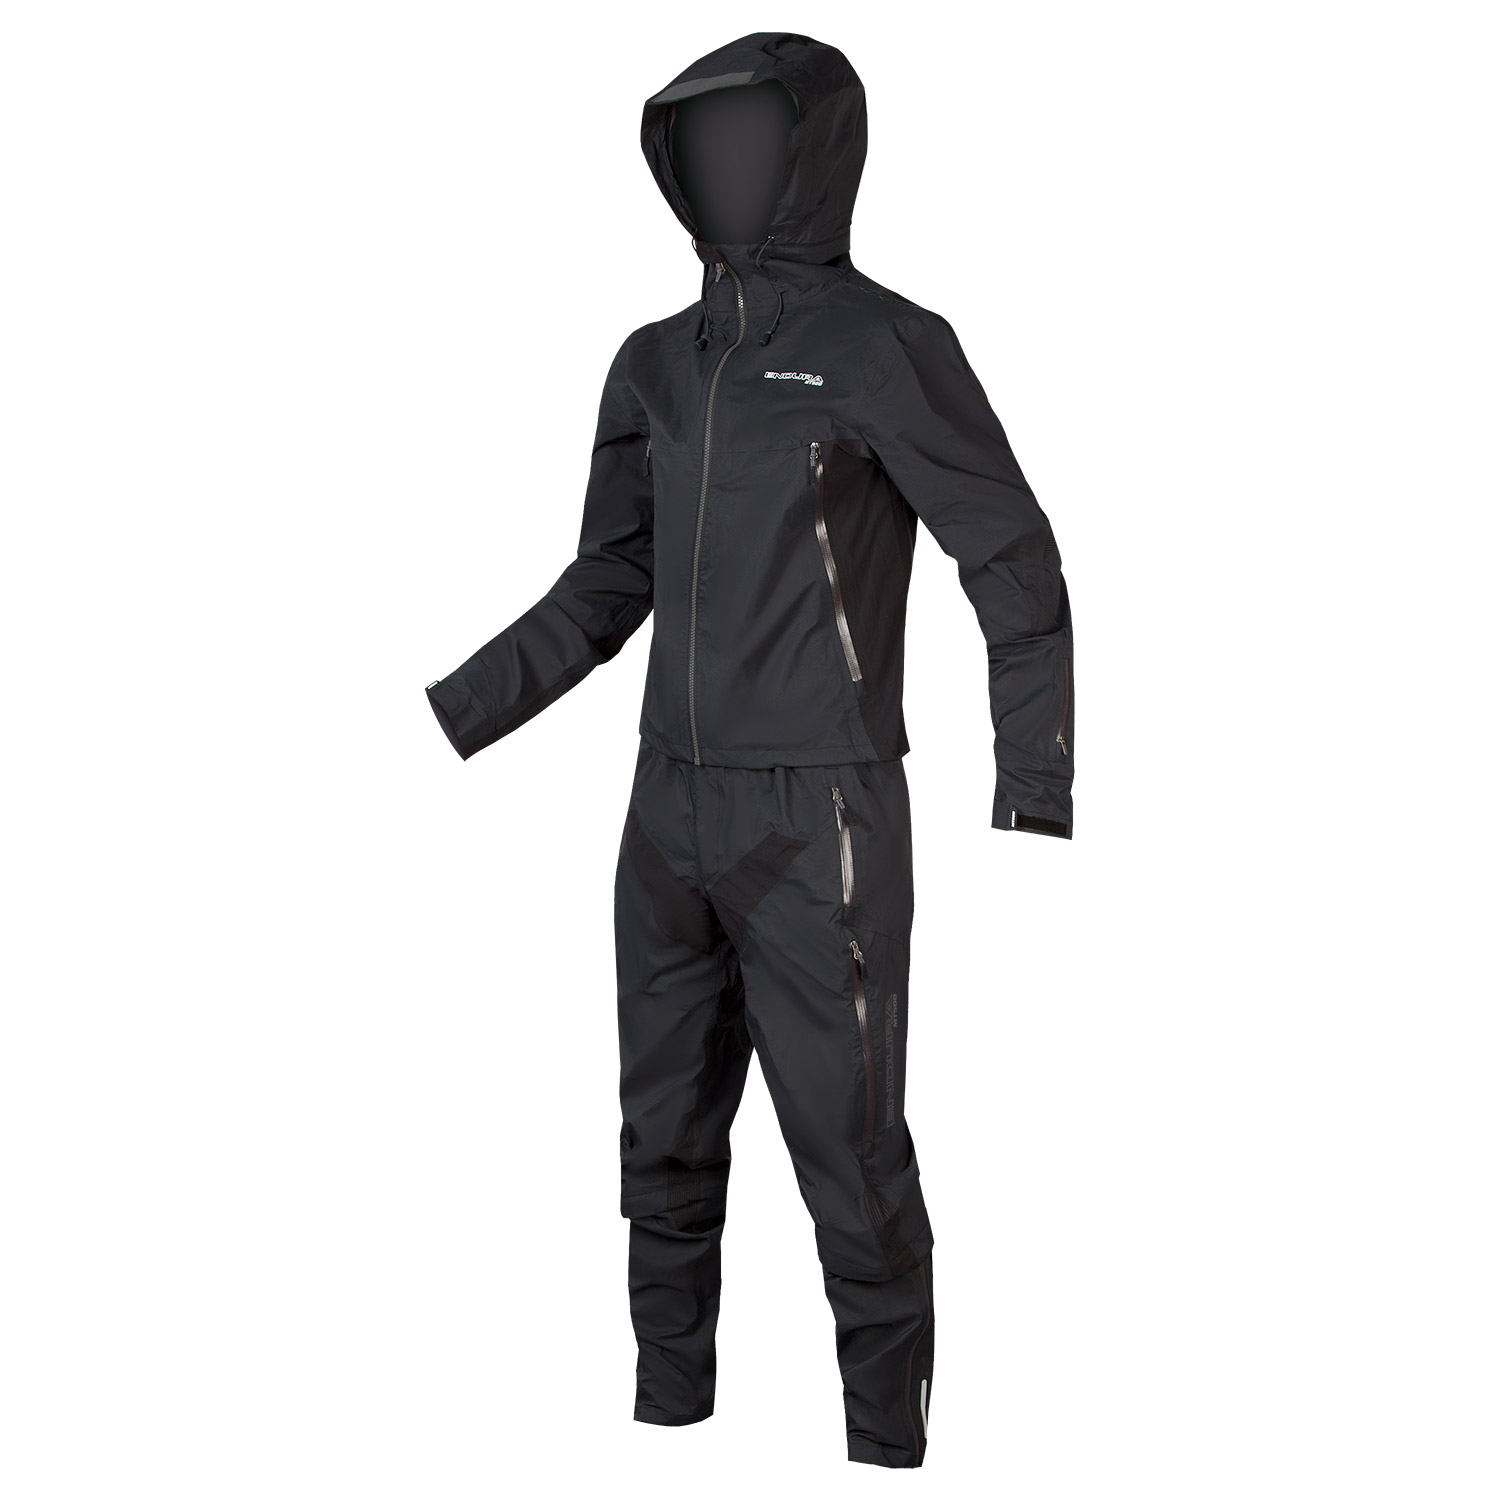 MT500 Waterproof Suit Black